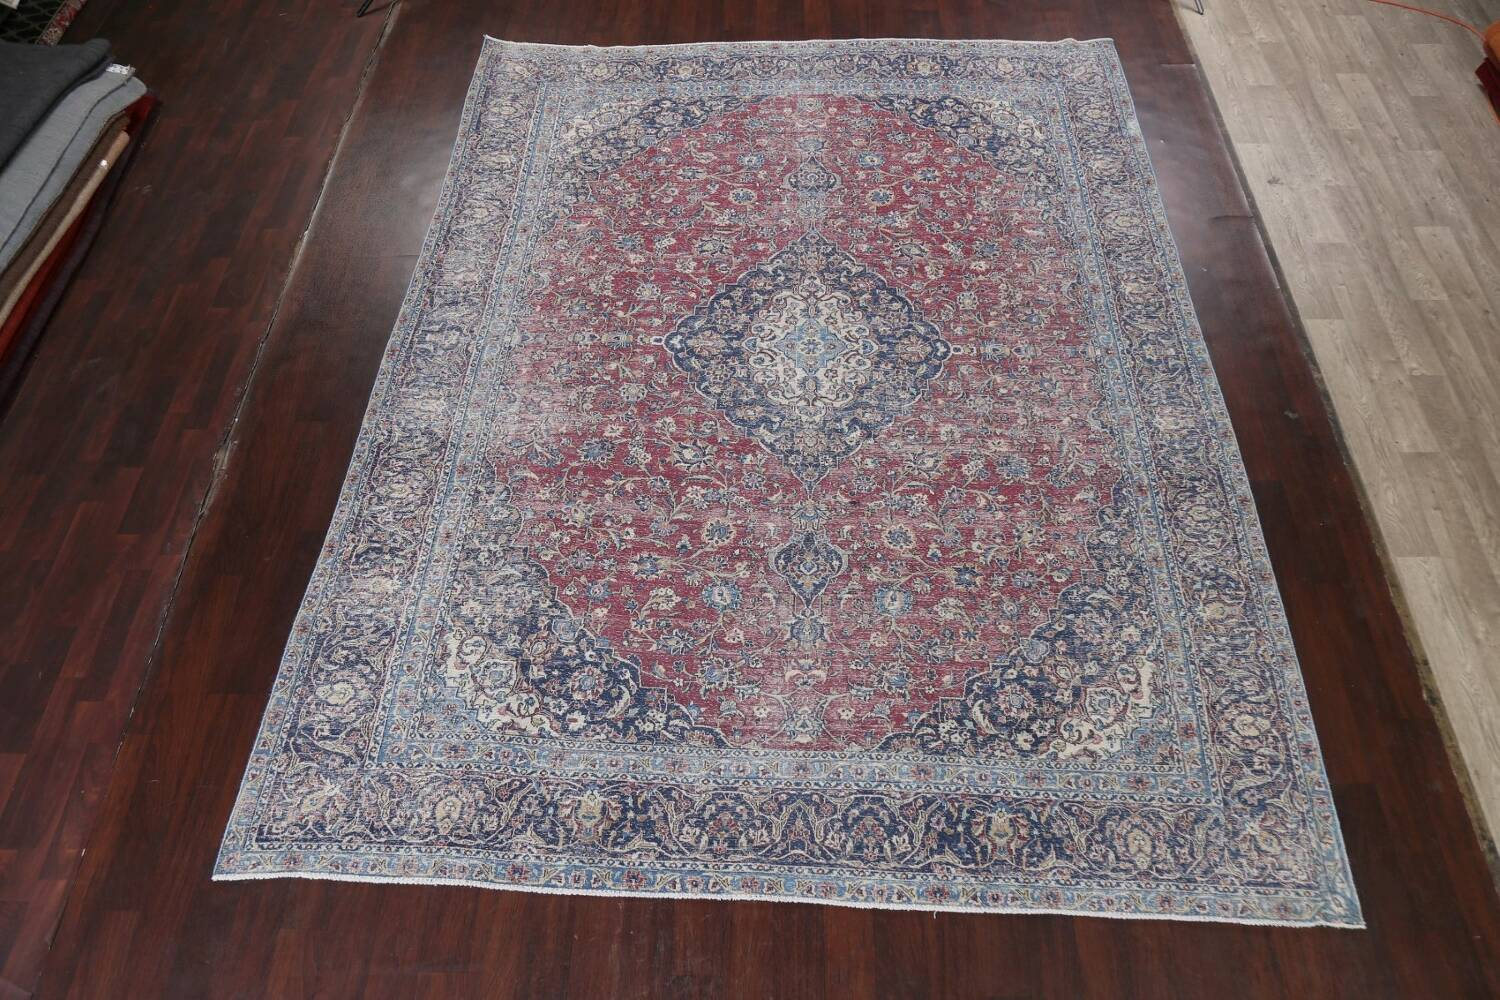 Antique Traditional Kashan Persian Rug 9x12 image 2